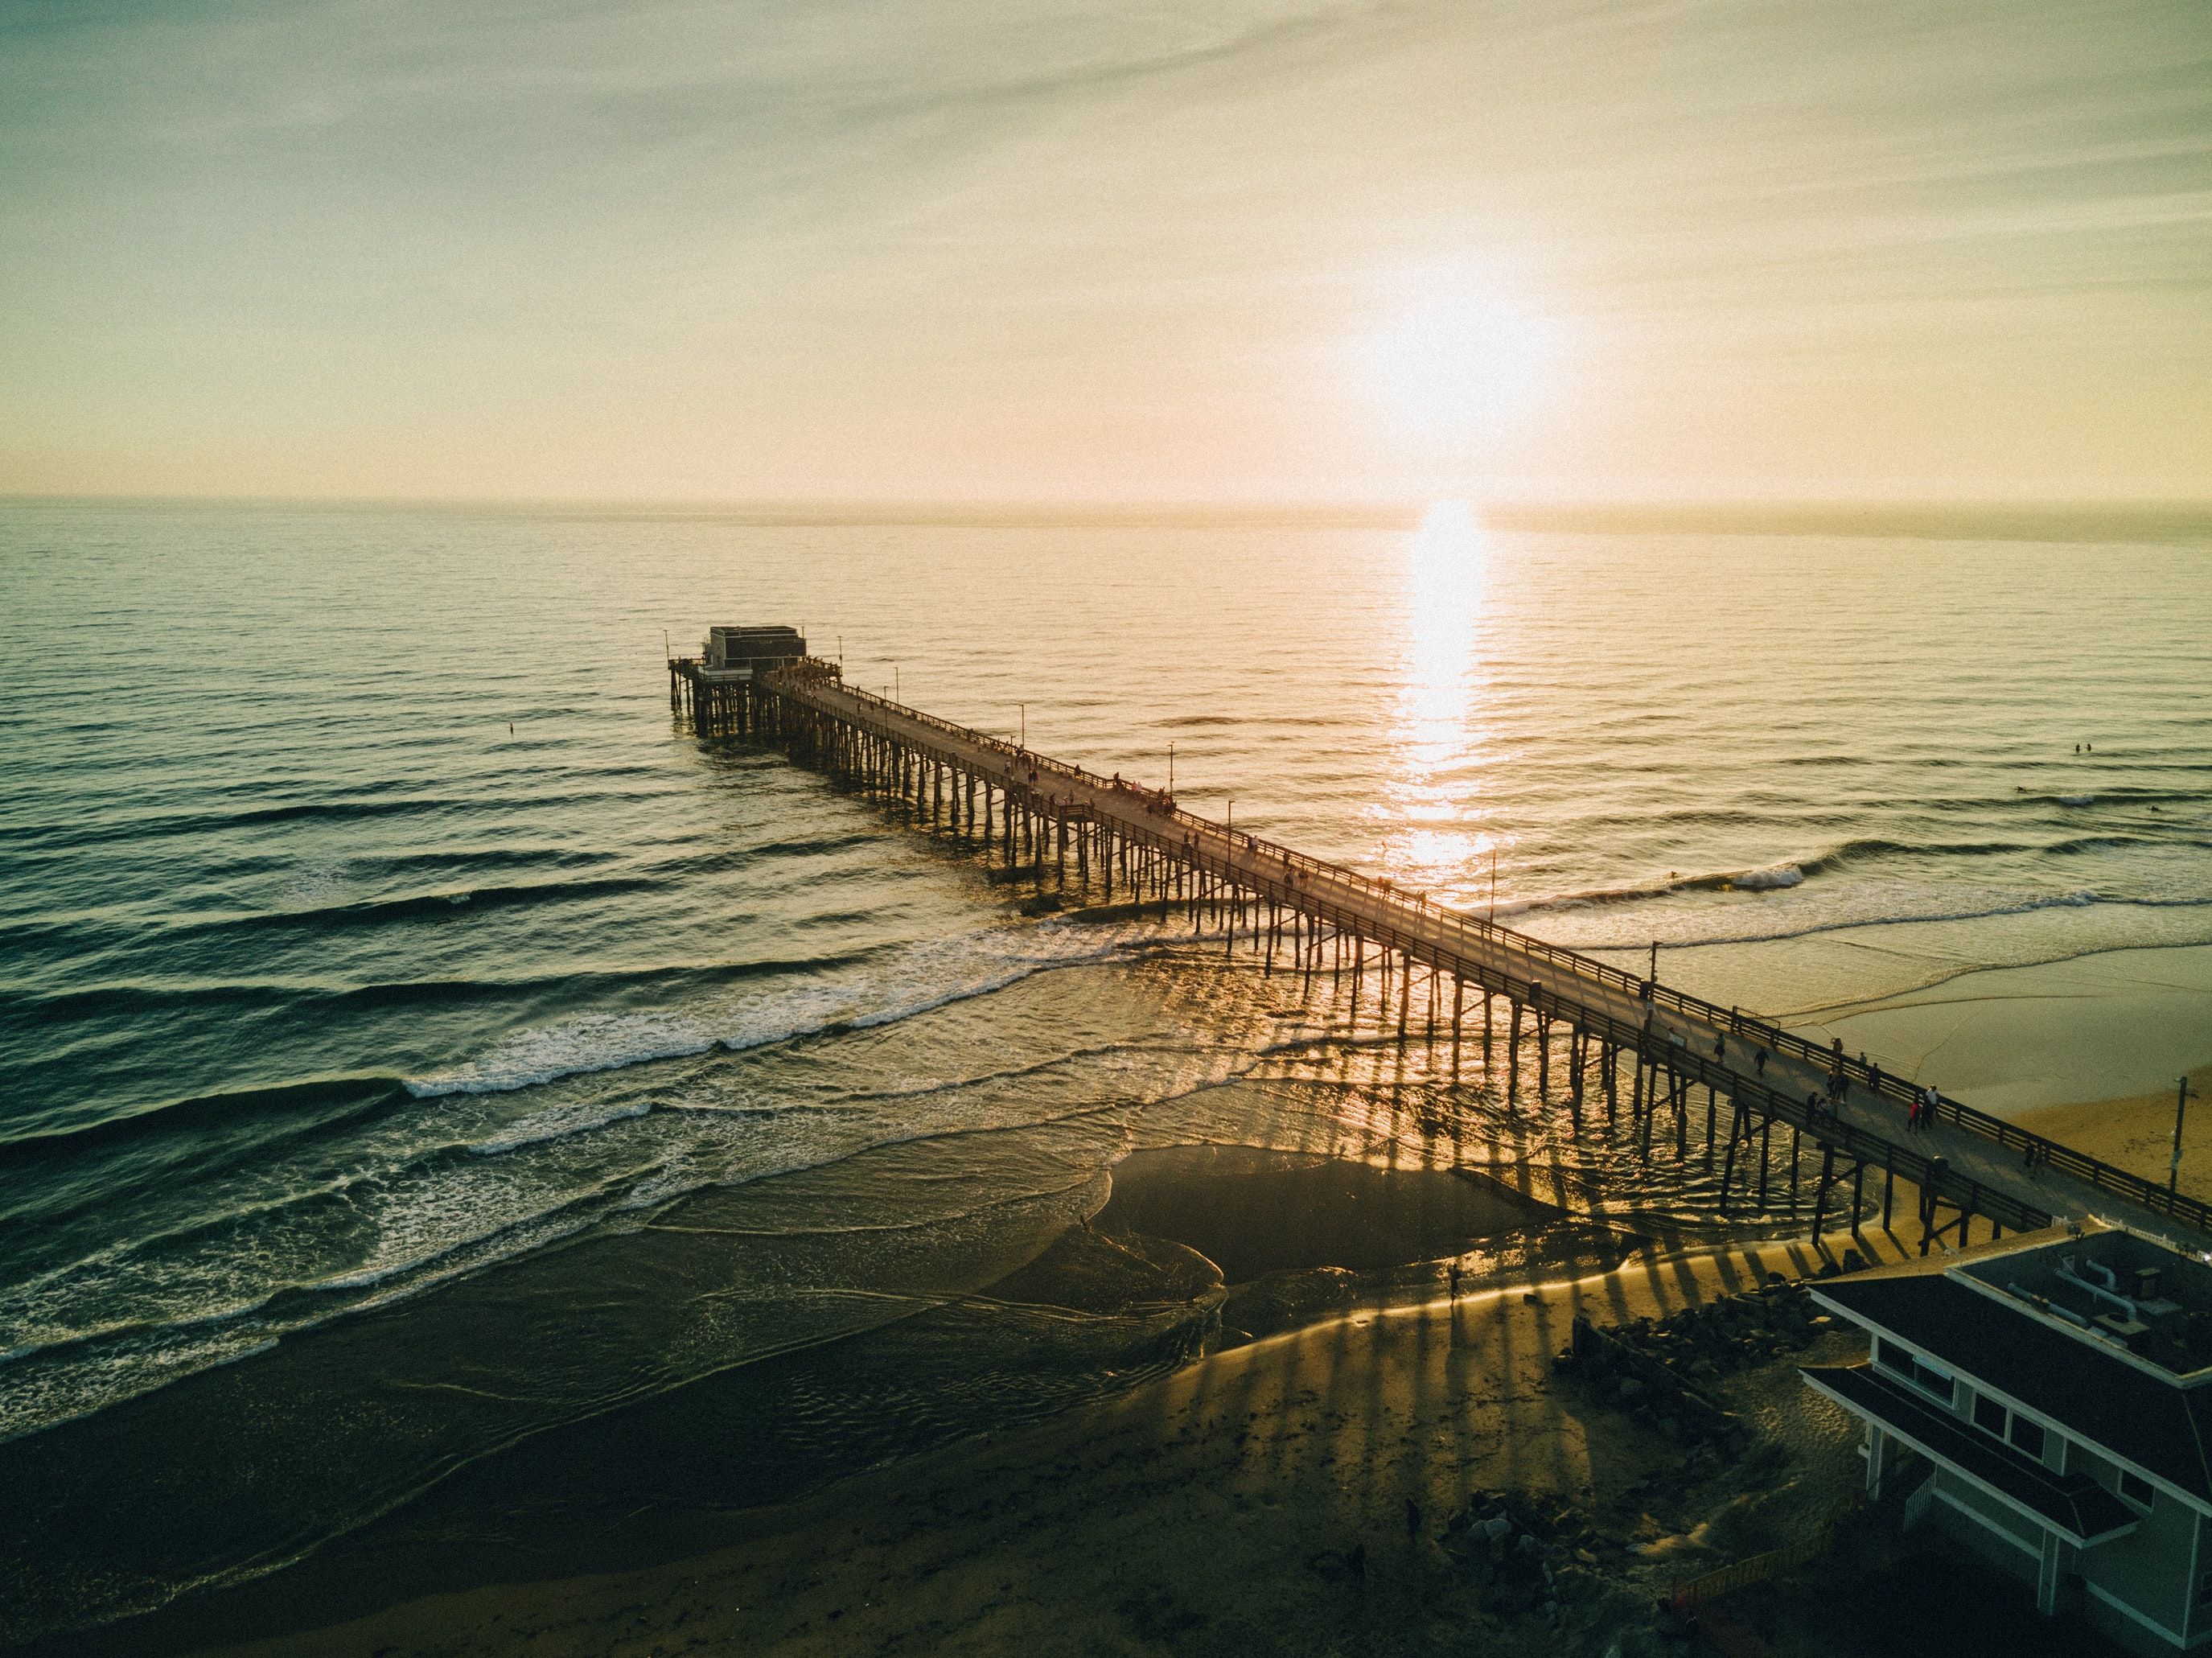 View of the long pier at the Newport Beach at sunset